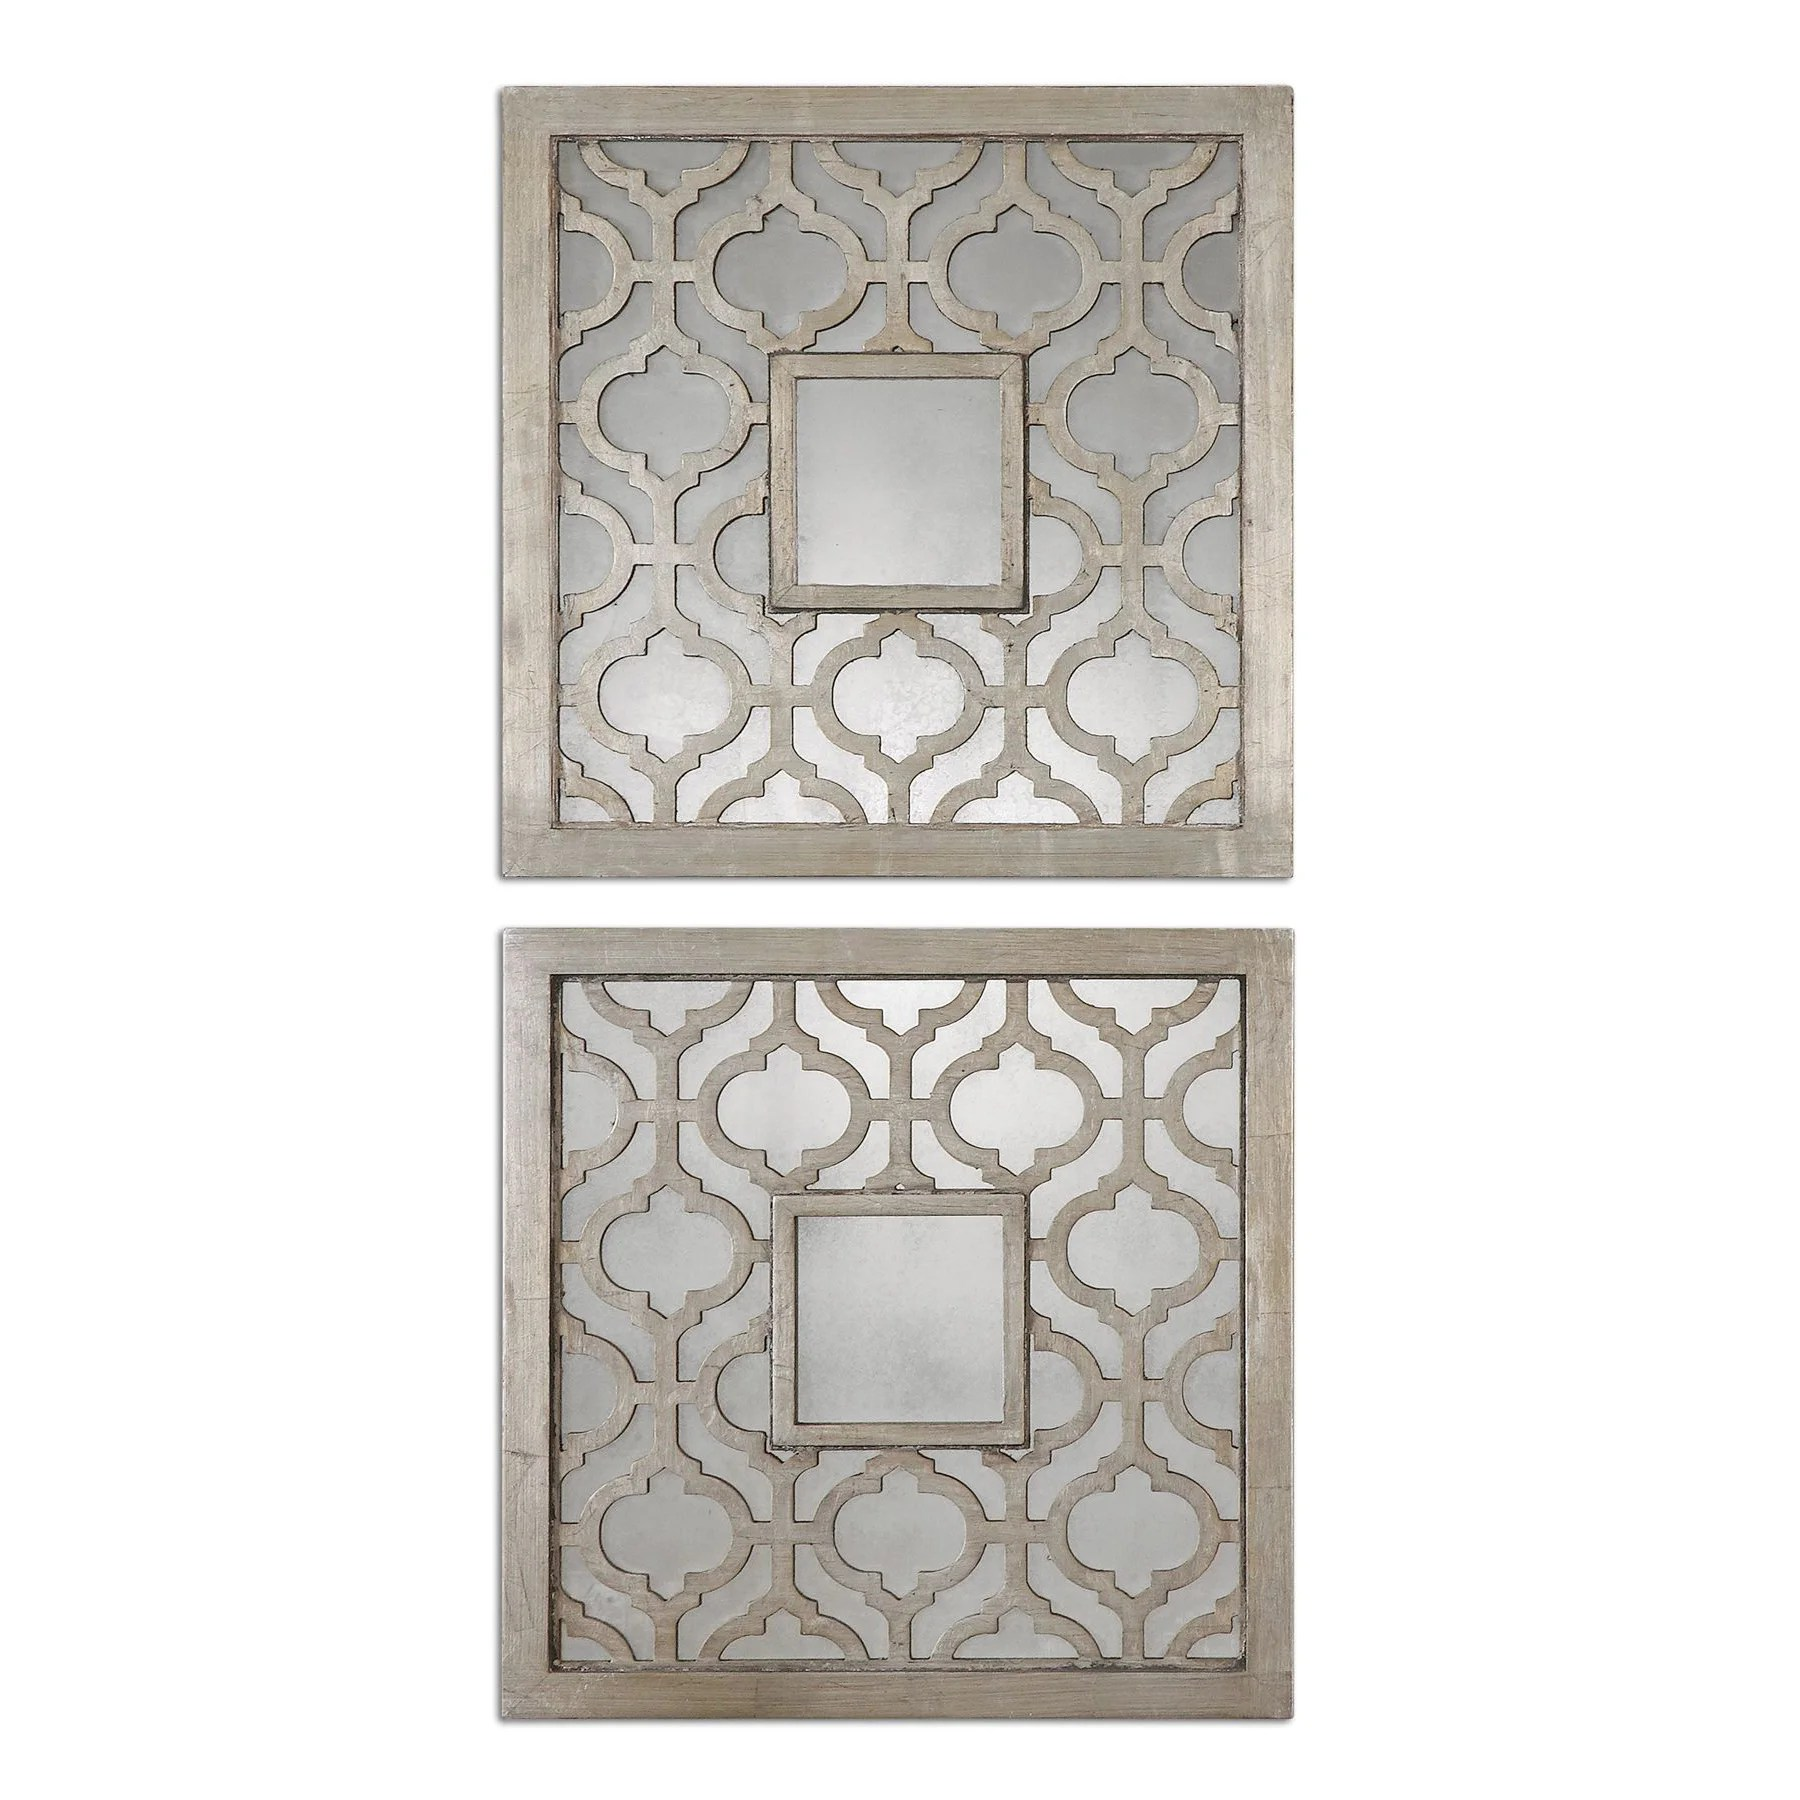 Decorative Mirror Uttermost Sorbolo Squares Decorative Mirror Set Of 2 Silver